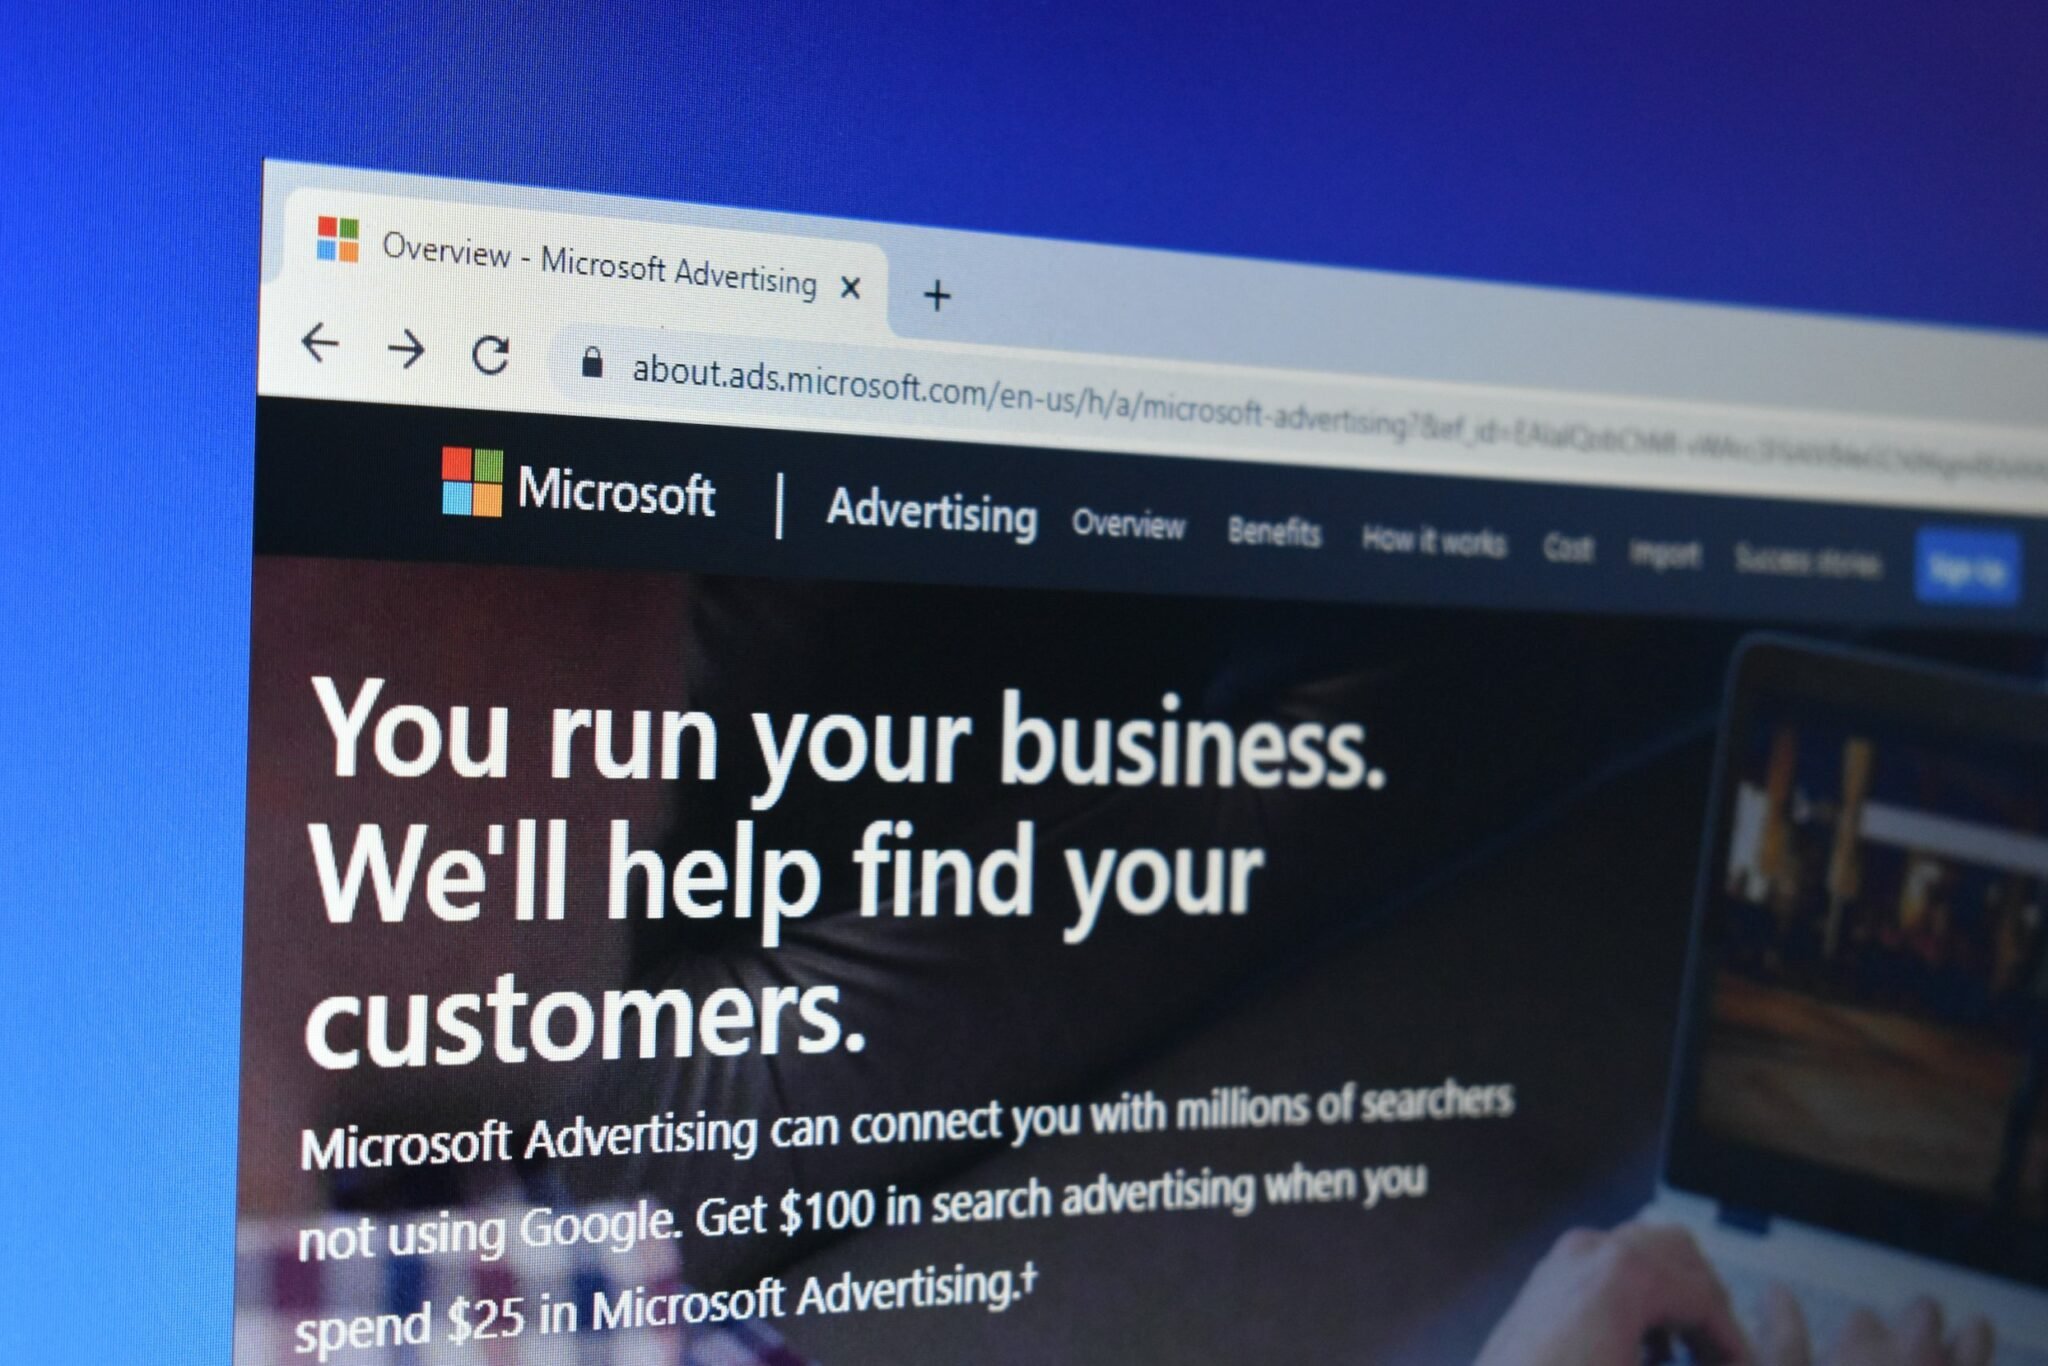 Microsoft to Auto Apply Ad Suggestions: What Advertisers Should Know via @hoffman8